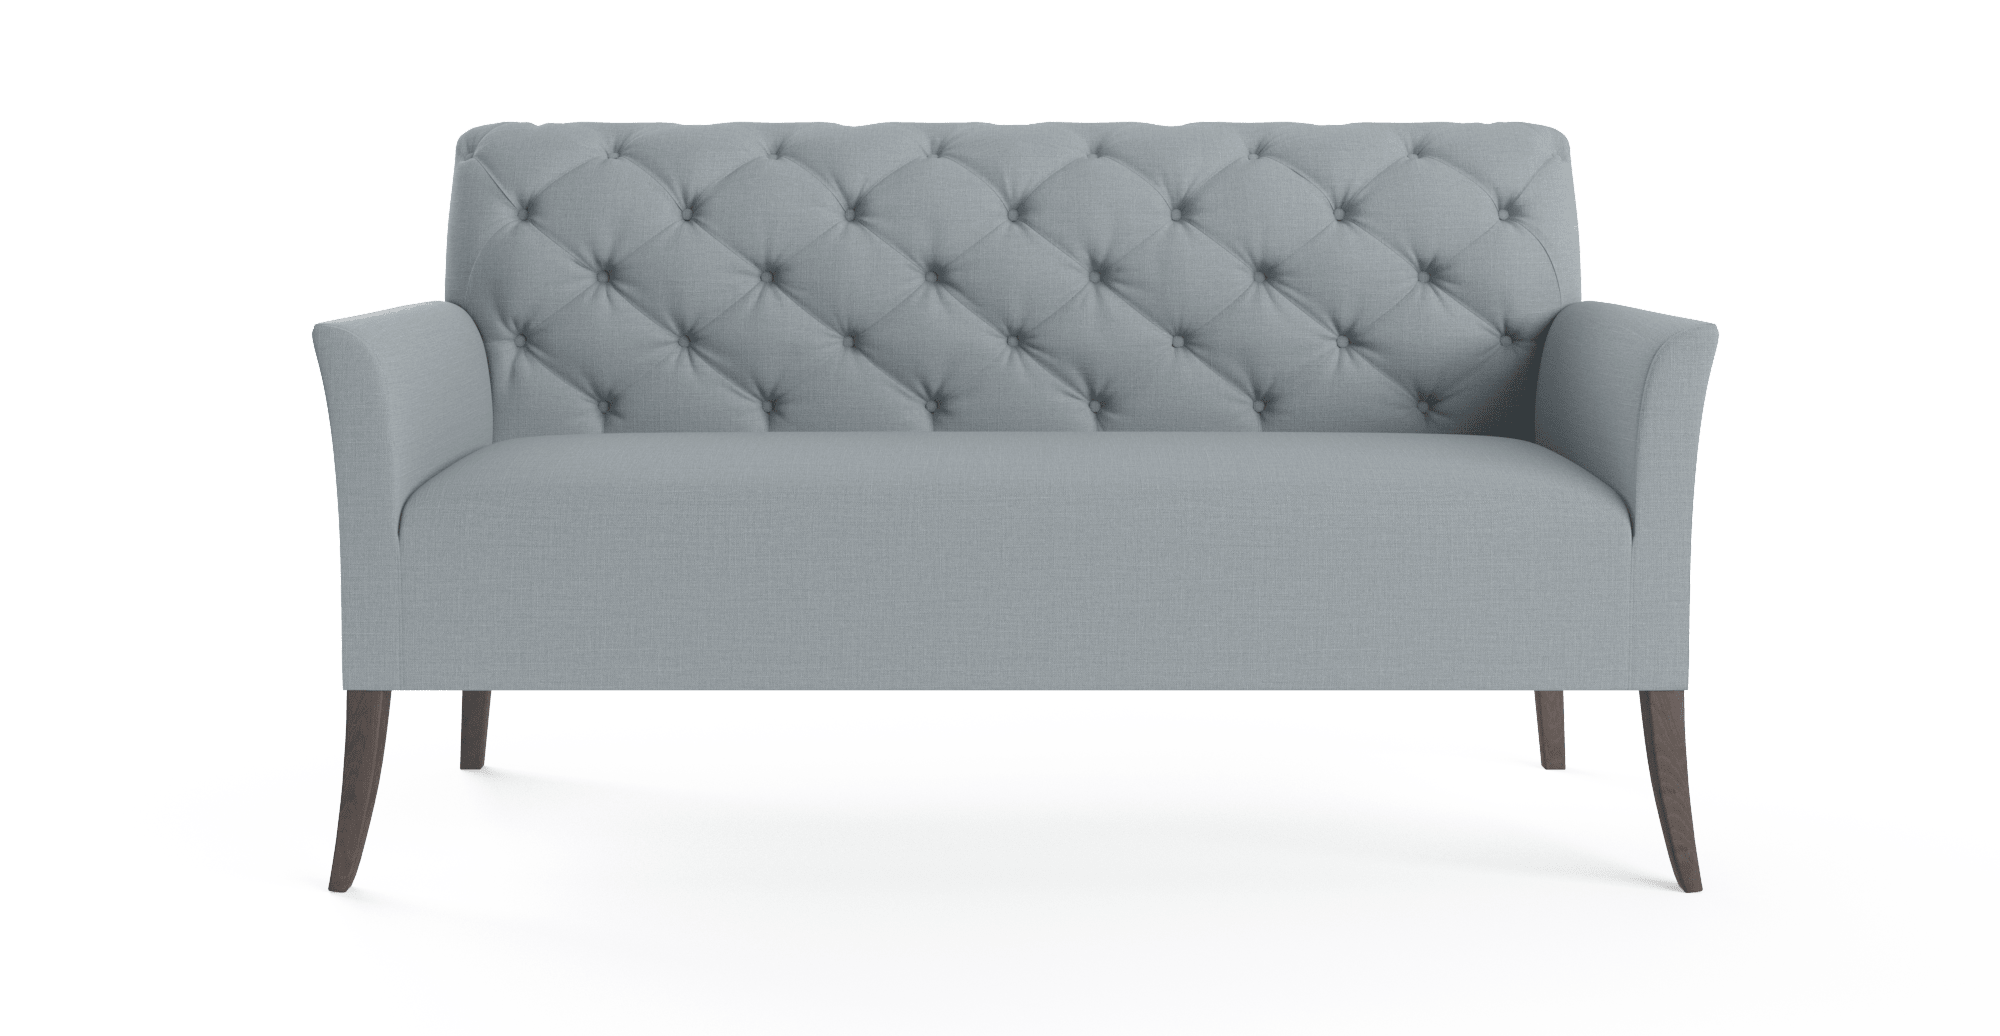 beaudan 2 seater sofa HUOTQOR